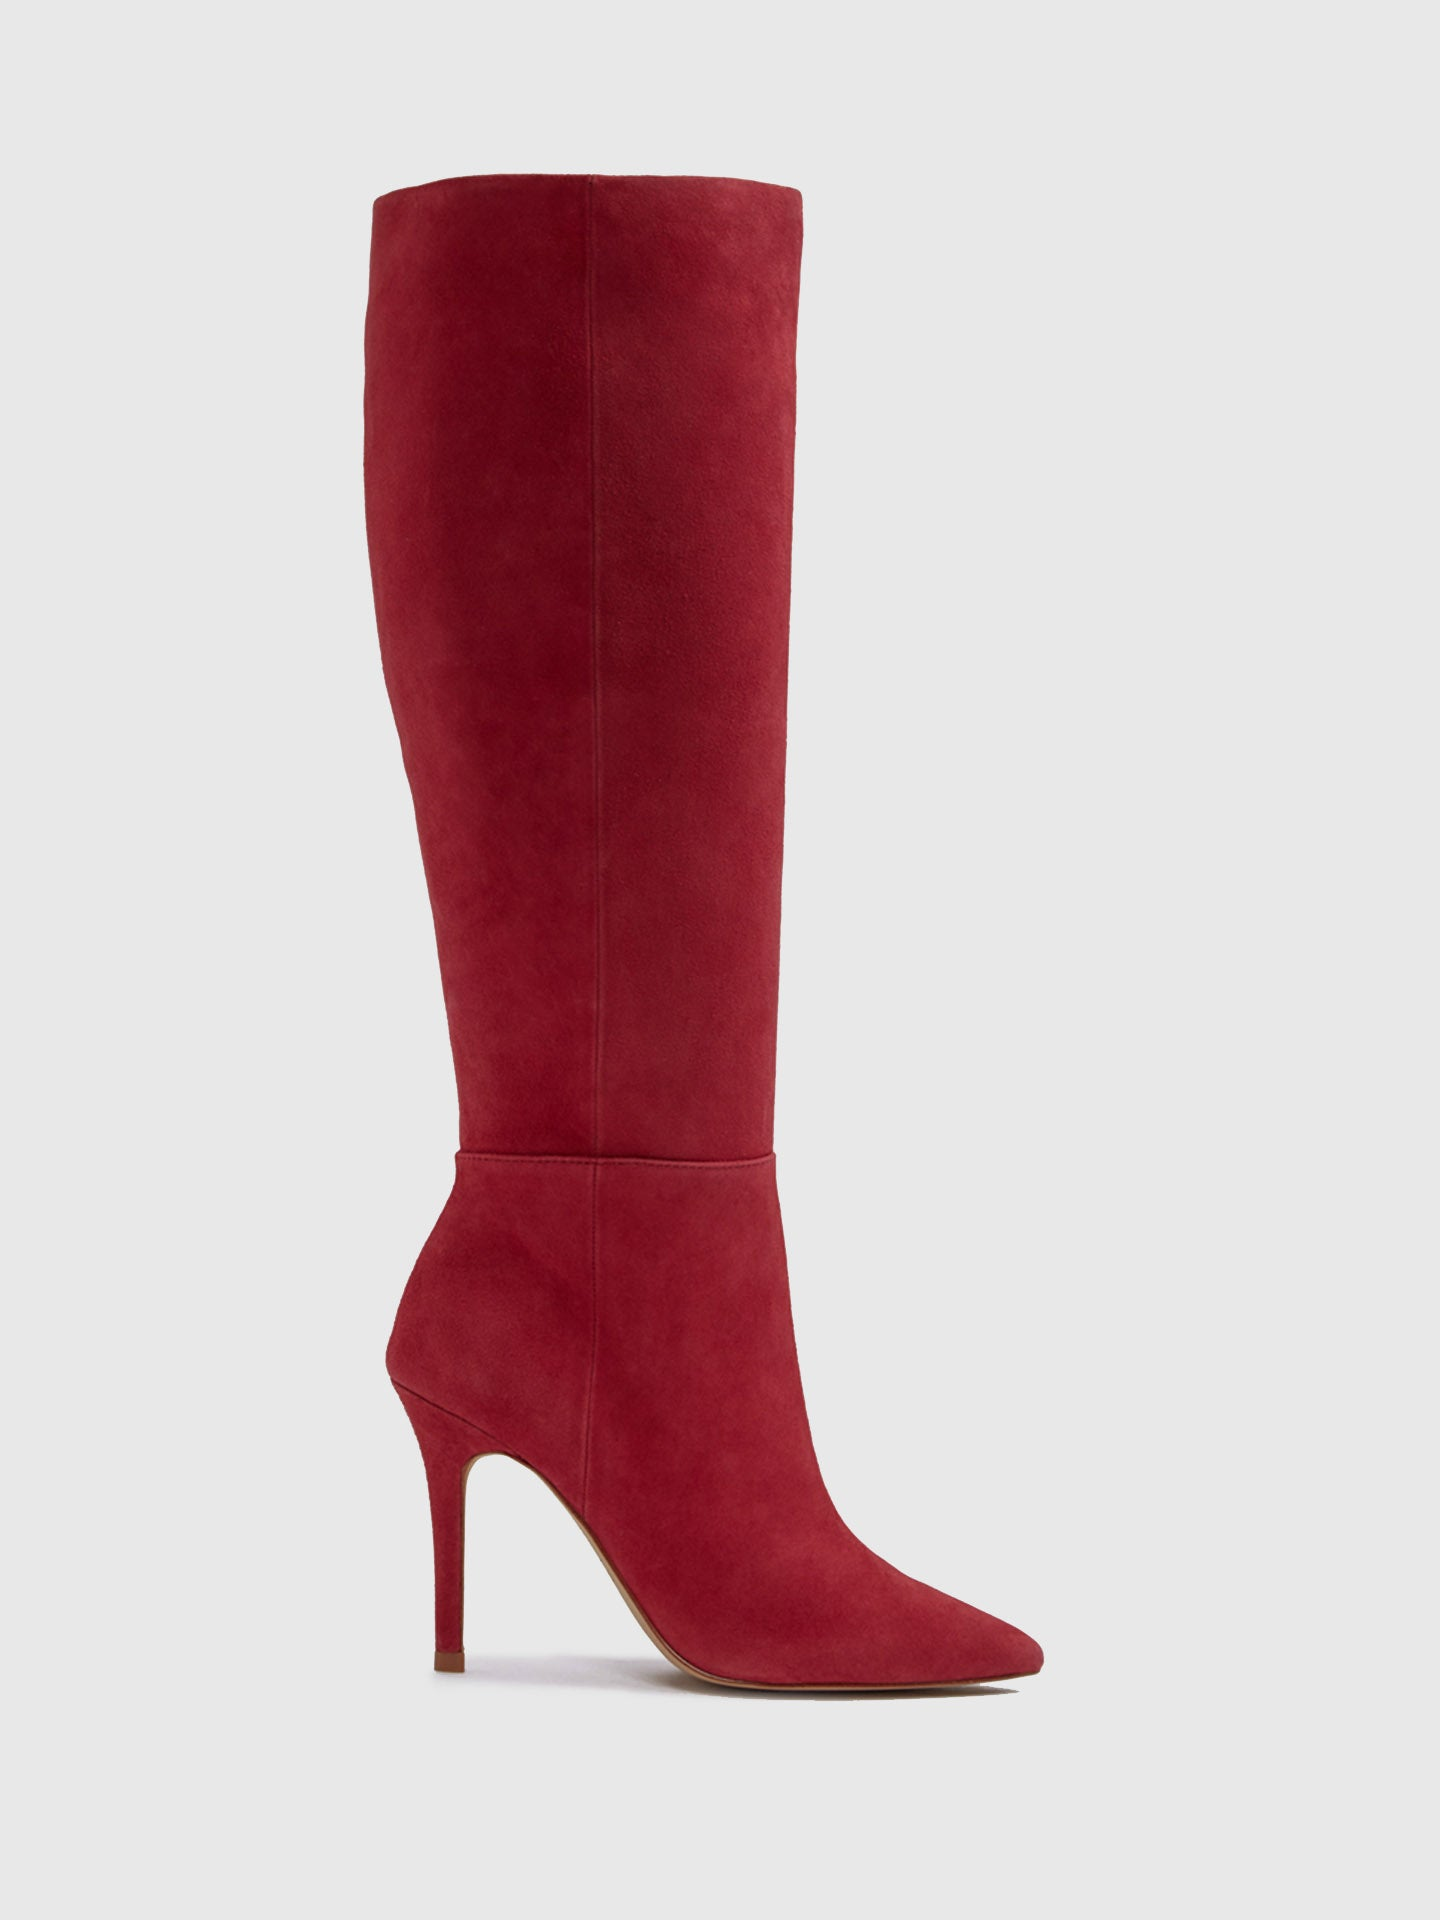 Aldo Red Knee-High Boots